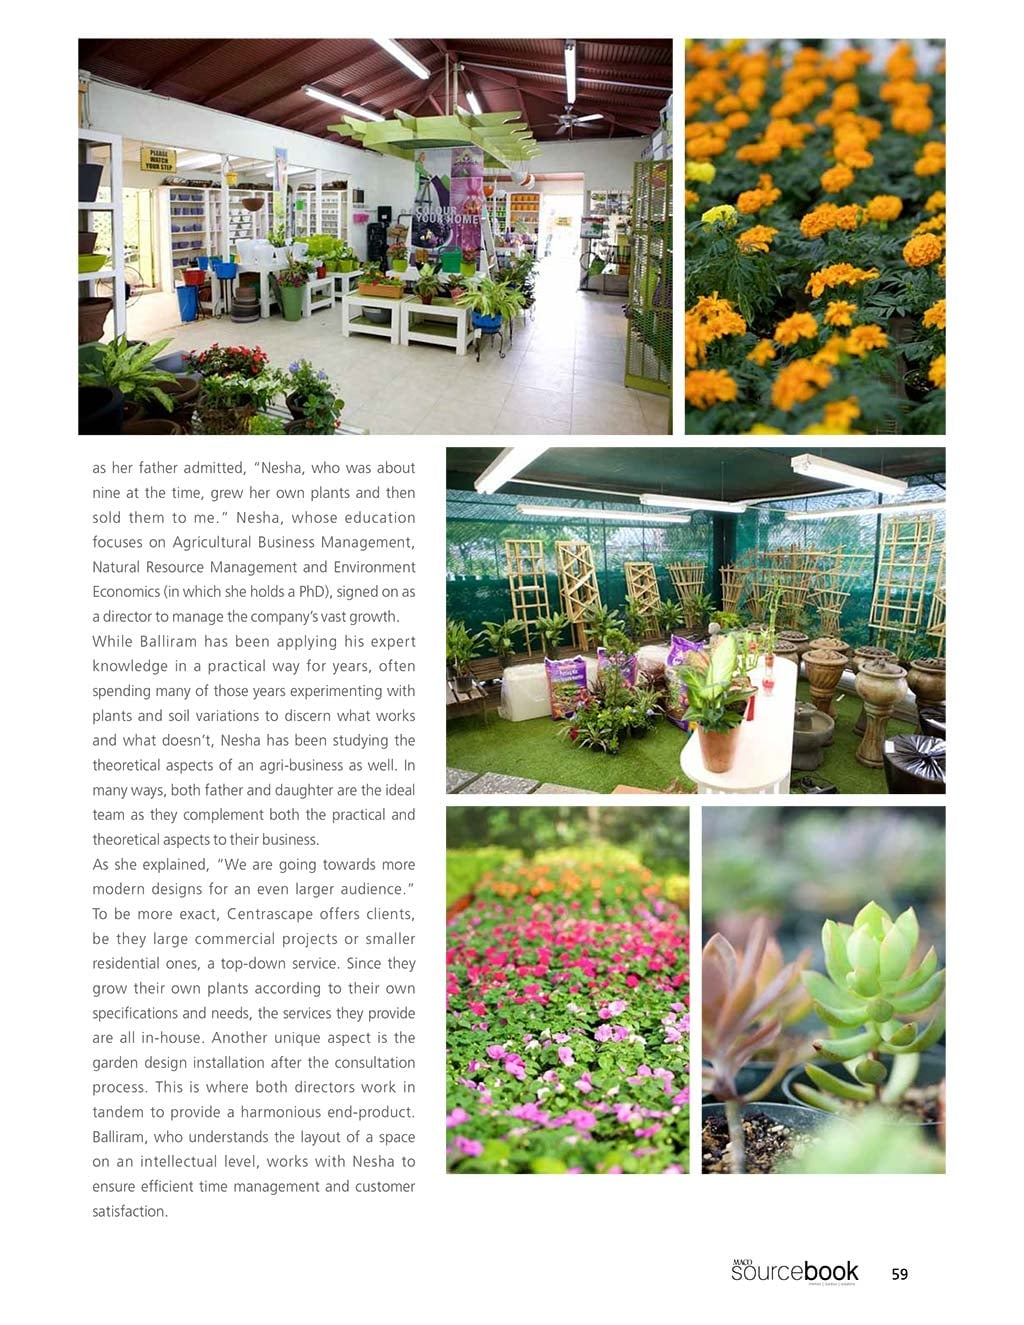 MACO Sourcebook - Centrascape Article - Page 2